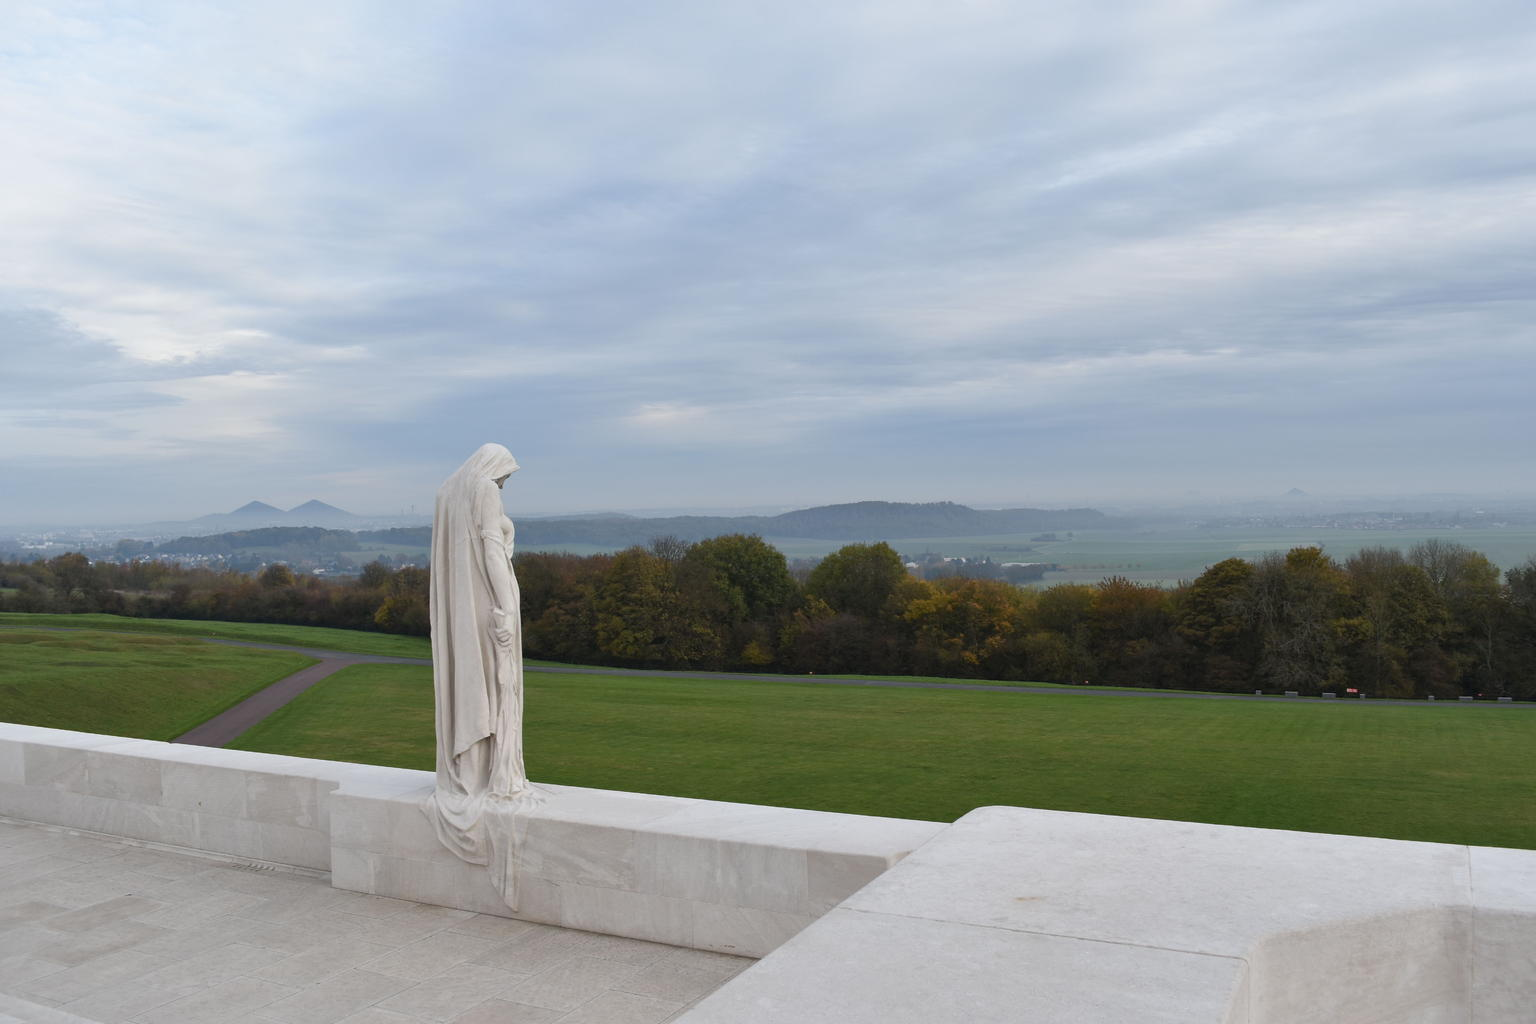 MÁS FOTOS, Vimy and Flanders Fields Canadian Battlefield Tour from Lille